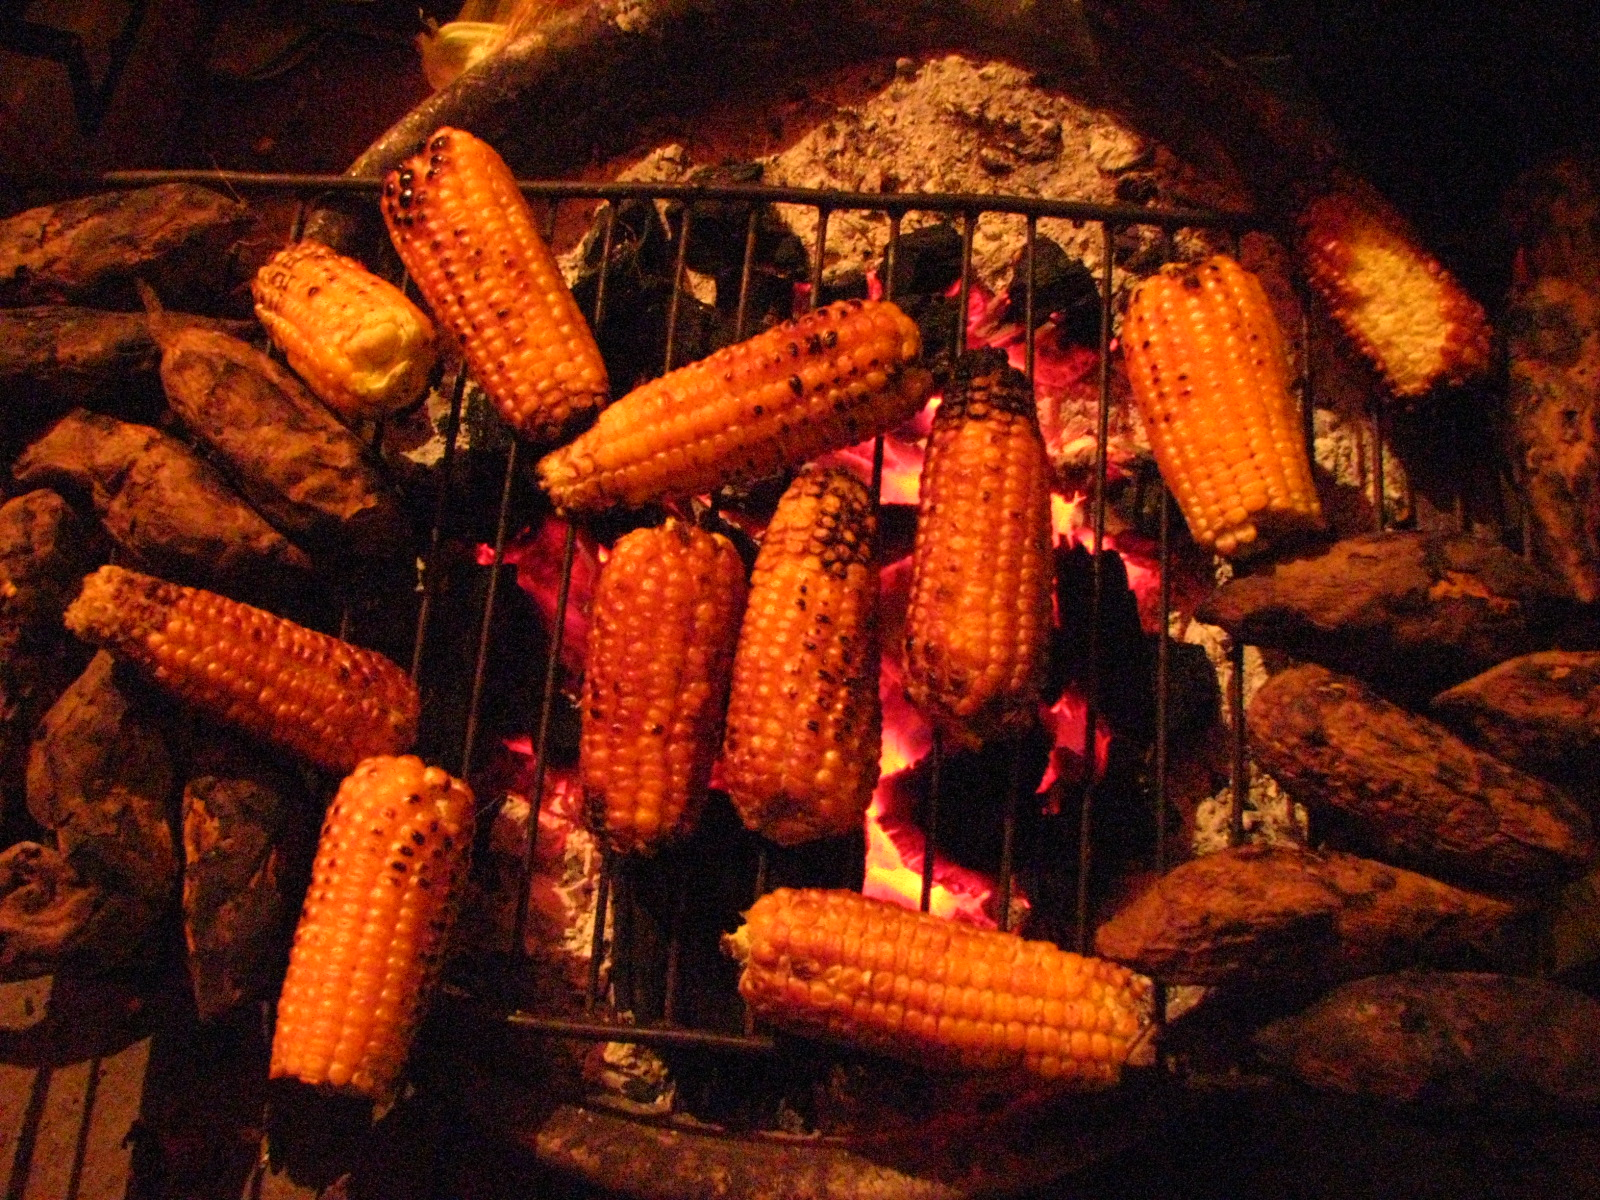 Toasted corn and sweet potatoes - attractive gift from Hanoi at night - things to do in Hanoi